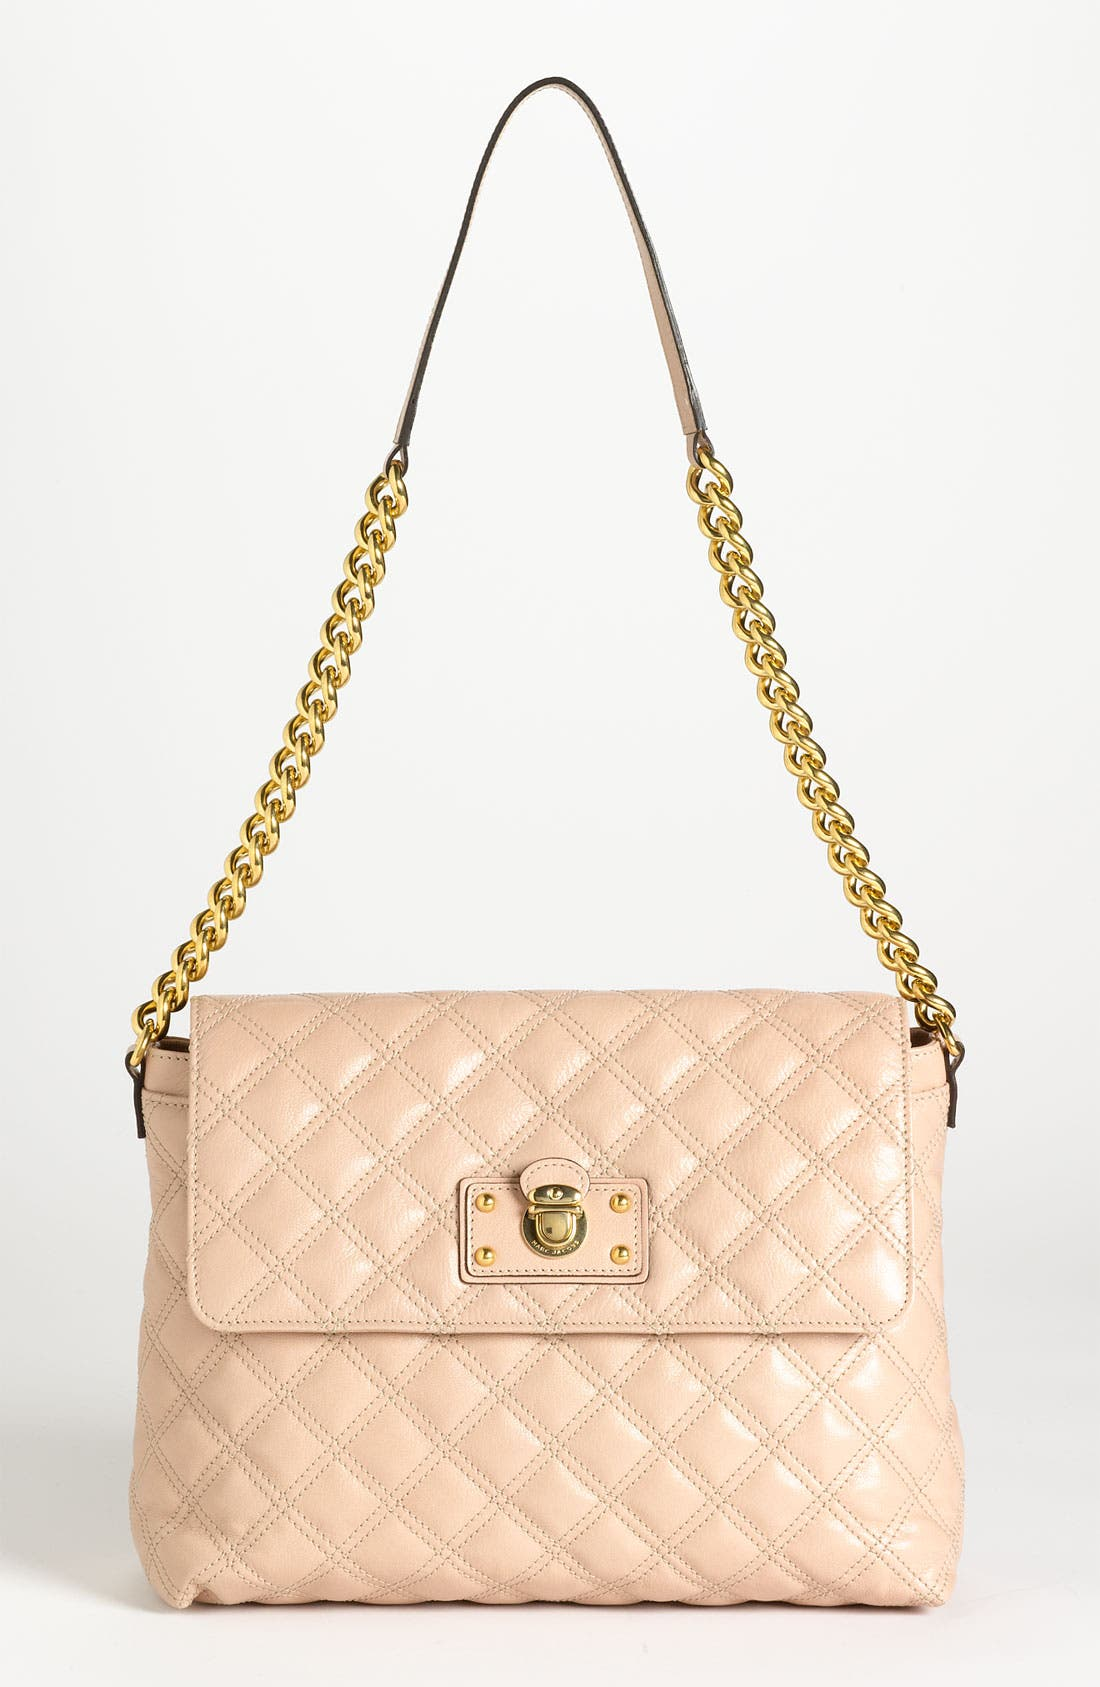 Alternate Image 1 Selected - MARC JACOBS 'The XL Single' Leather Shoulder Bag